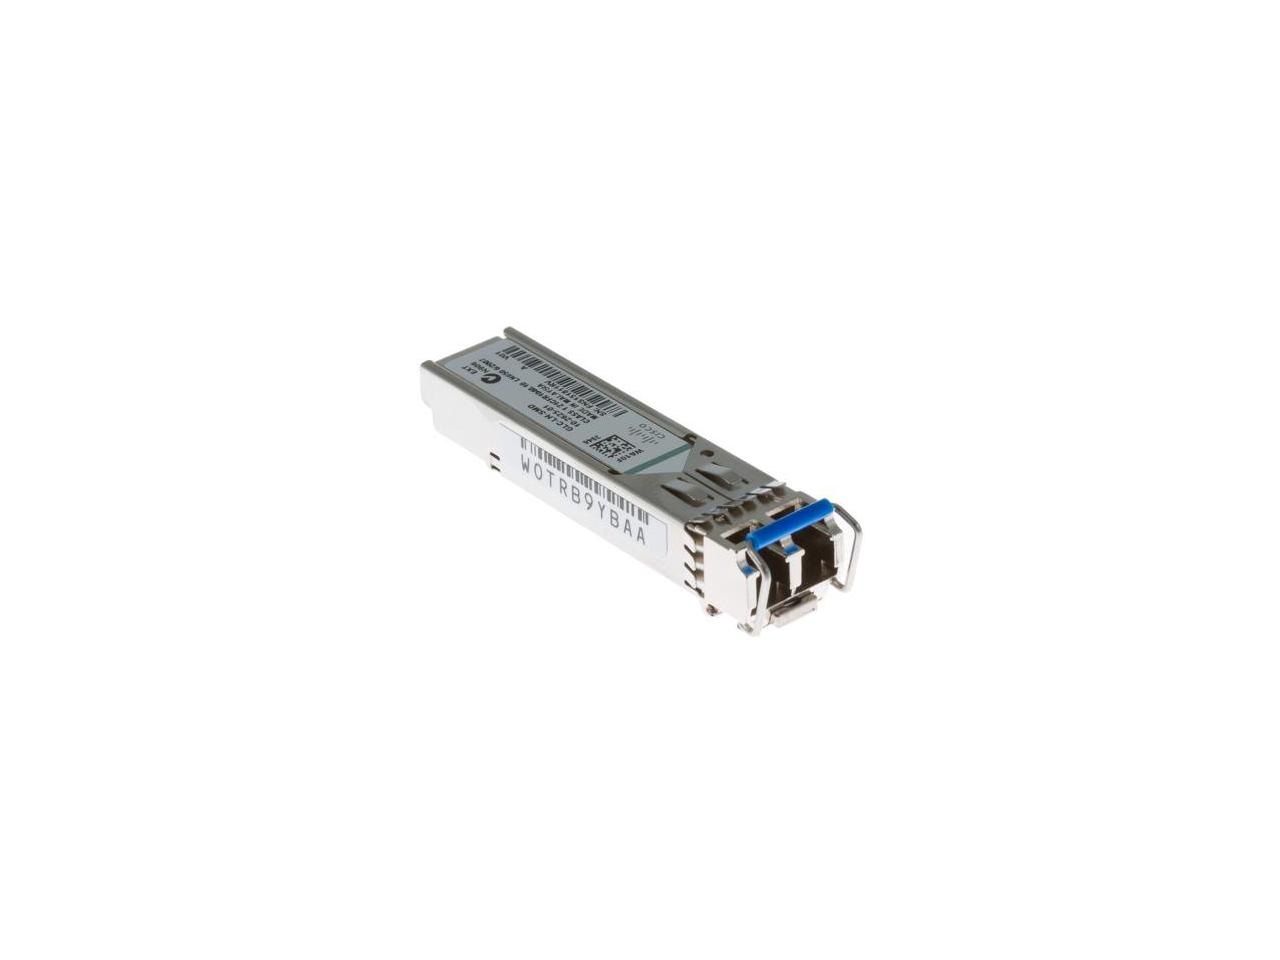 Cisco GLC-LH-SMD Small Form-Factor Pluggable SMF Transceiver